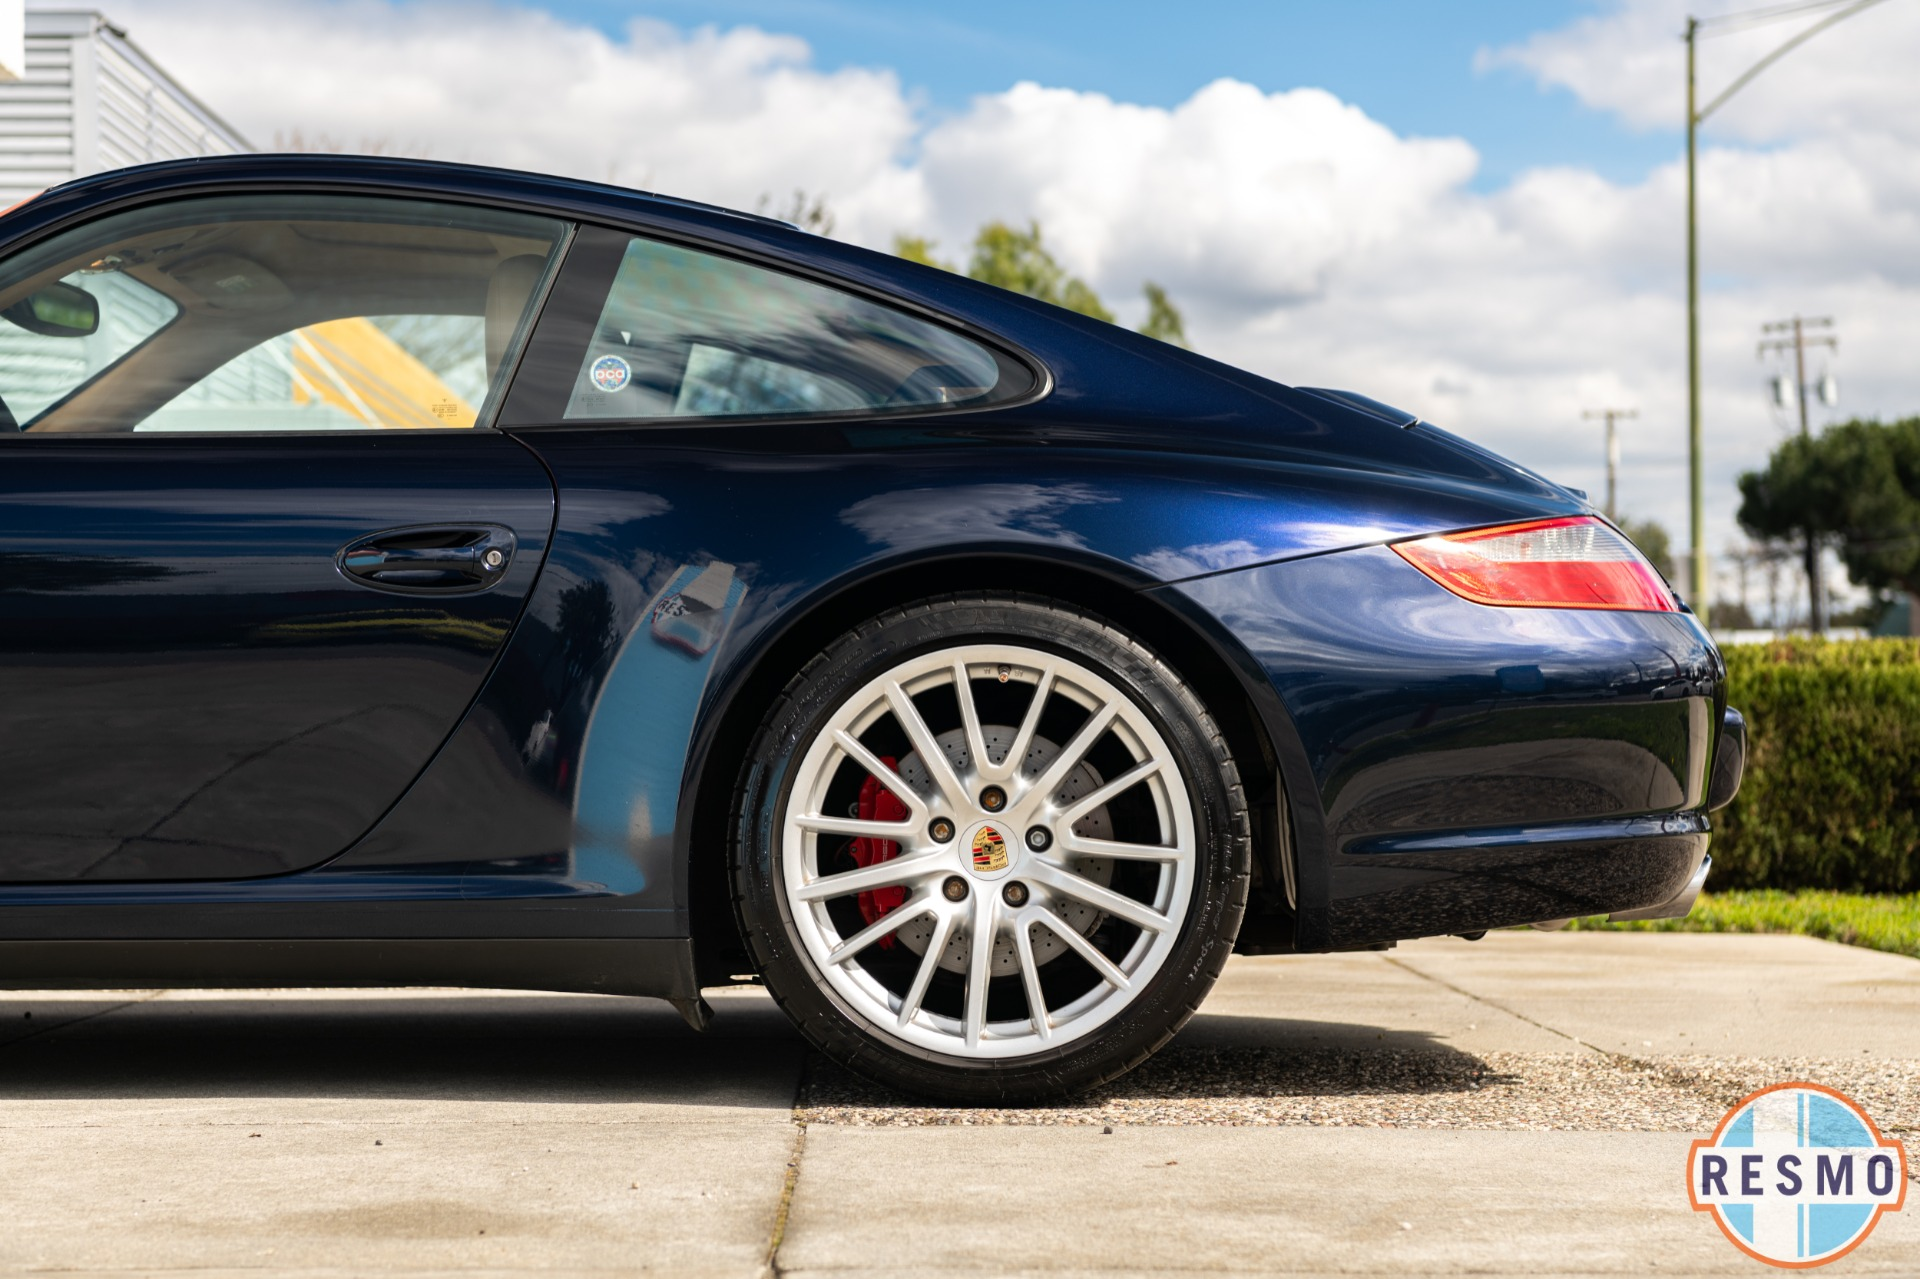 Used 2008 Porsche 911 Carrera 4S Used 2008 Porsche 911 Carrera 4S for sale $41,999 at Response Motors in Mountain View CA 9